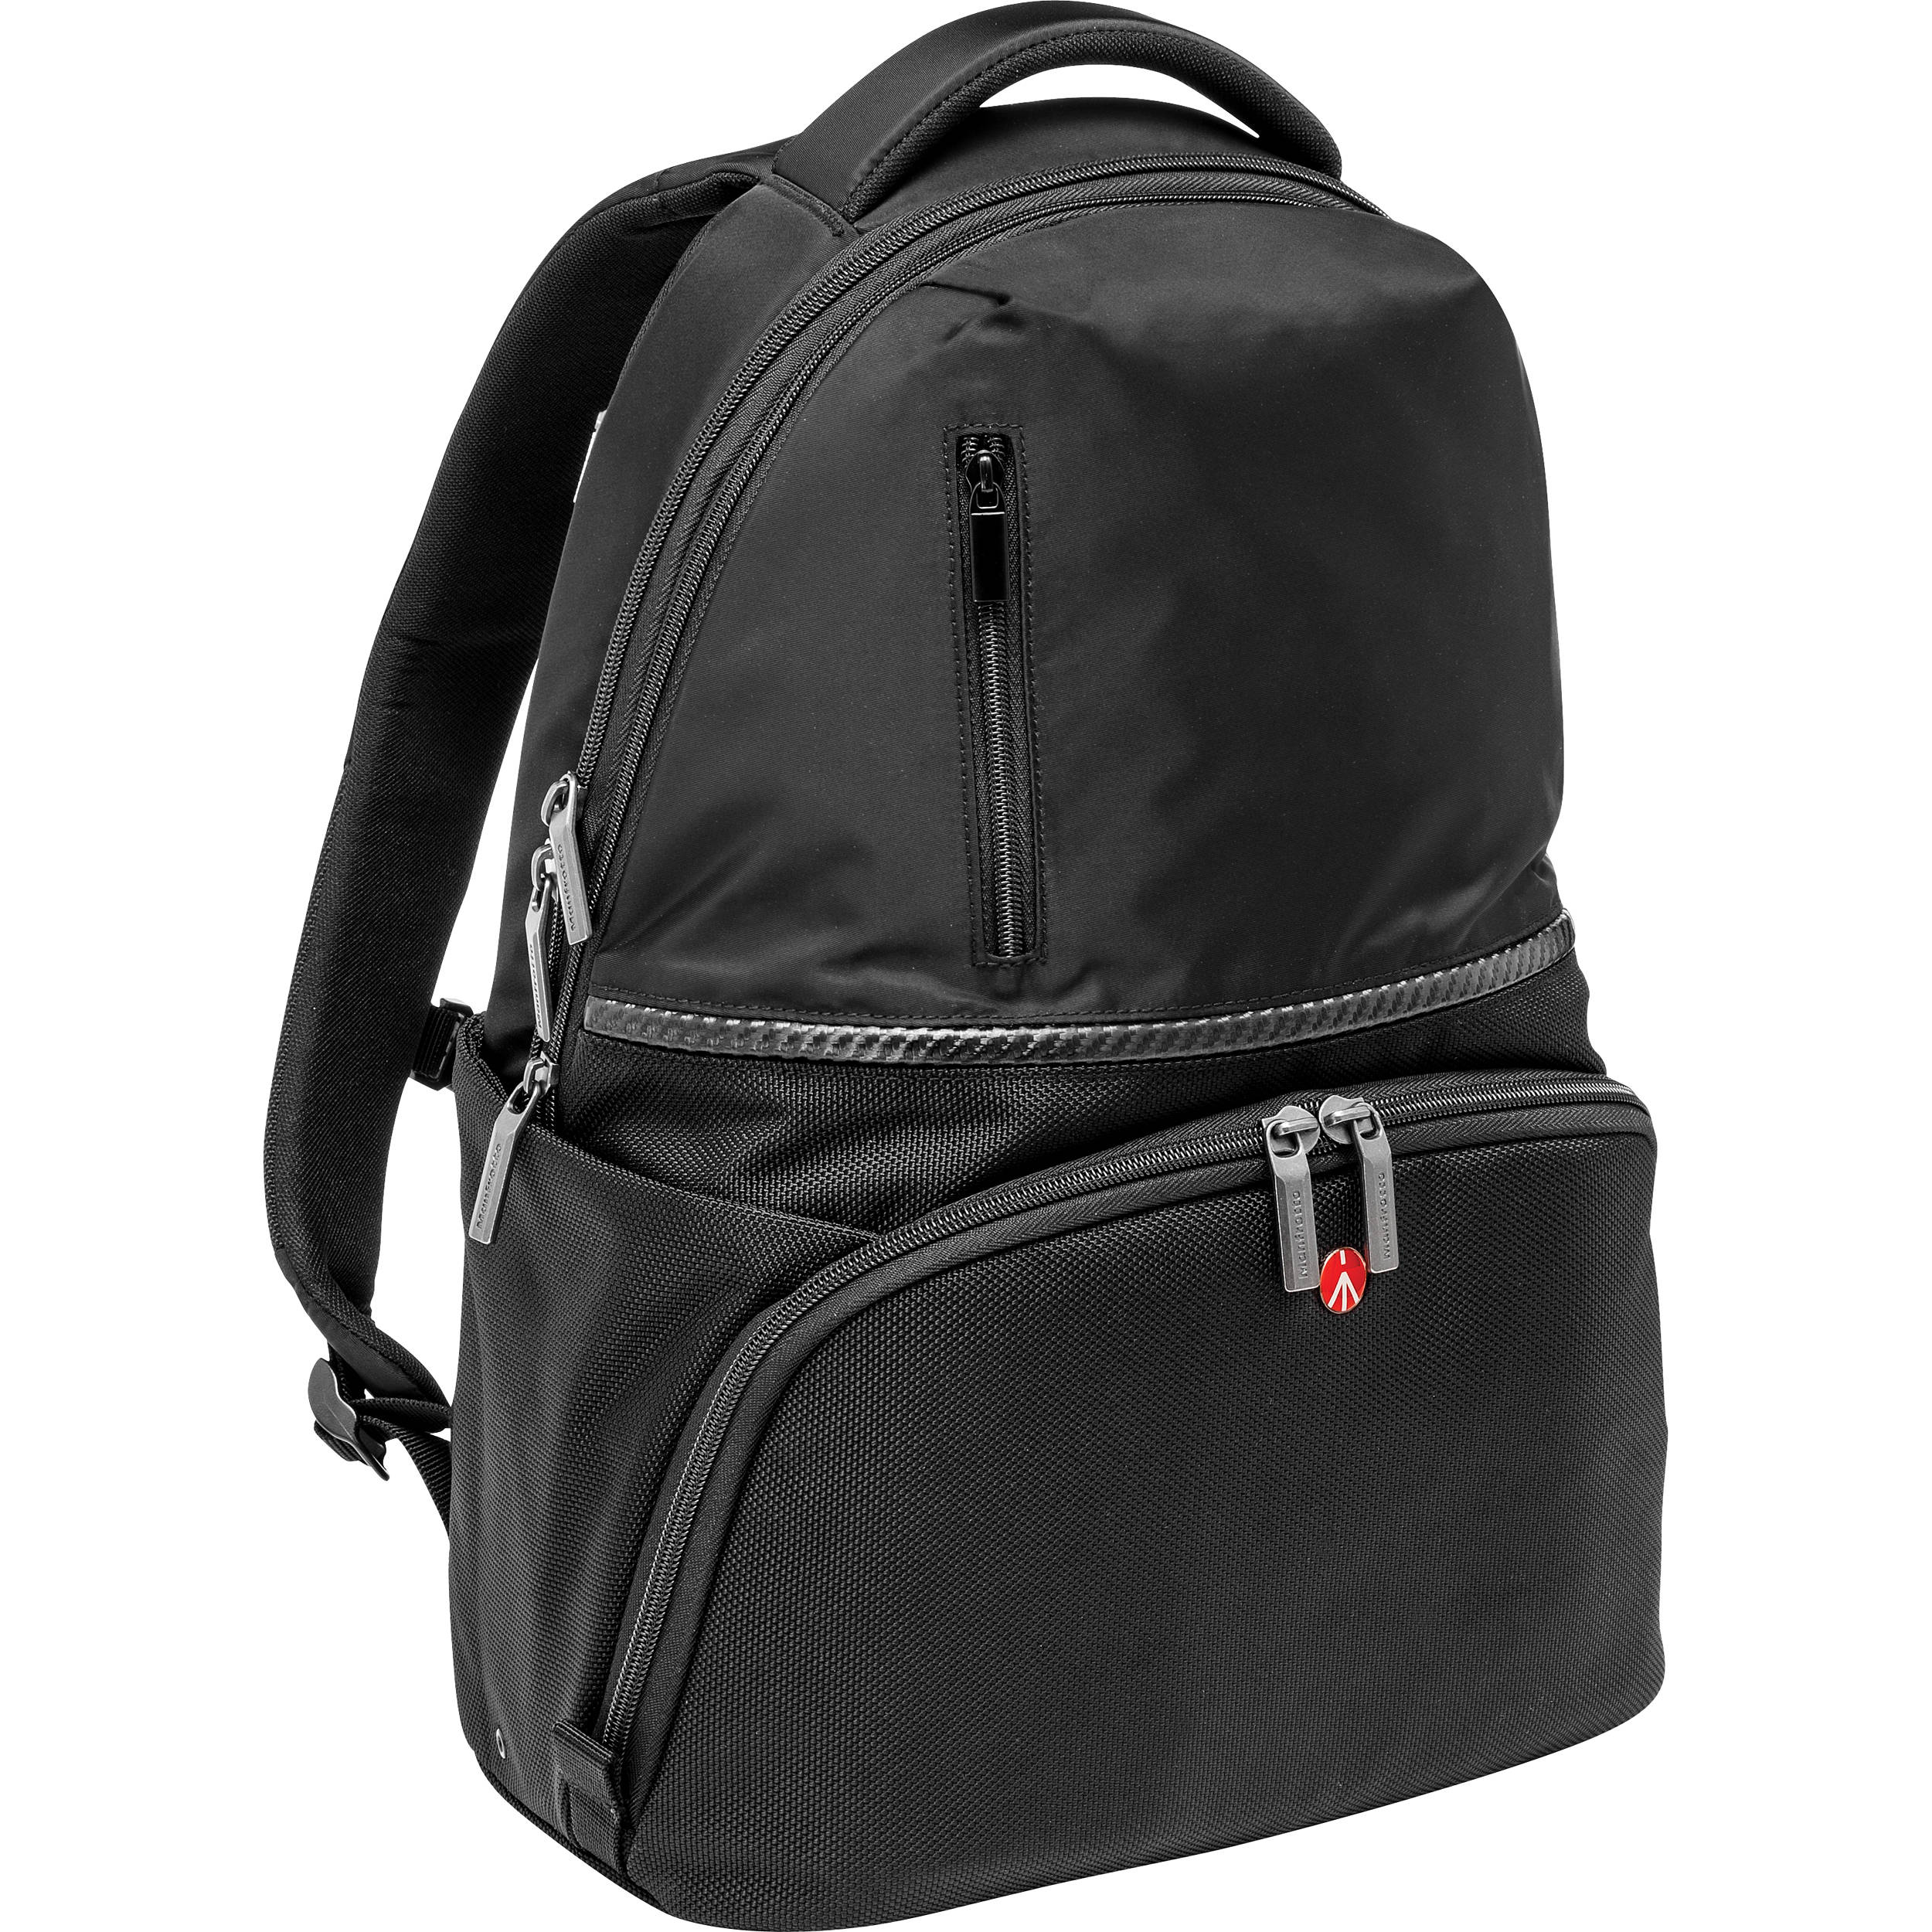 manfrotto active backpack 1 review